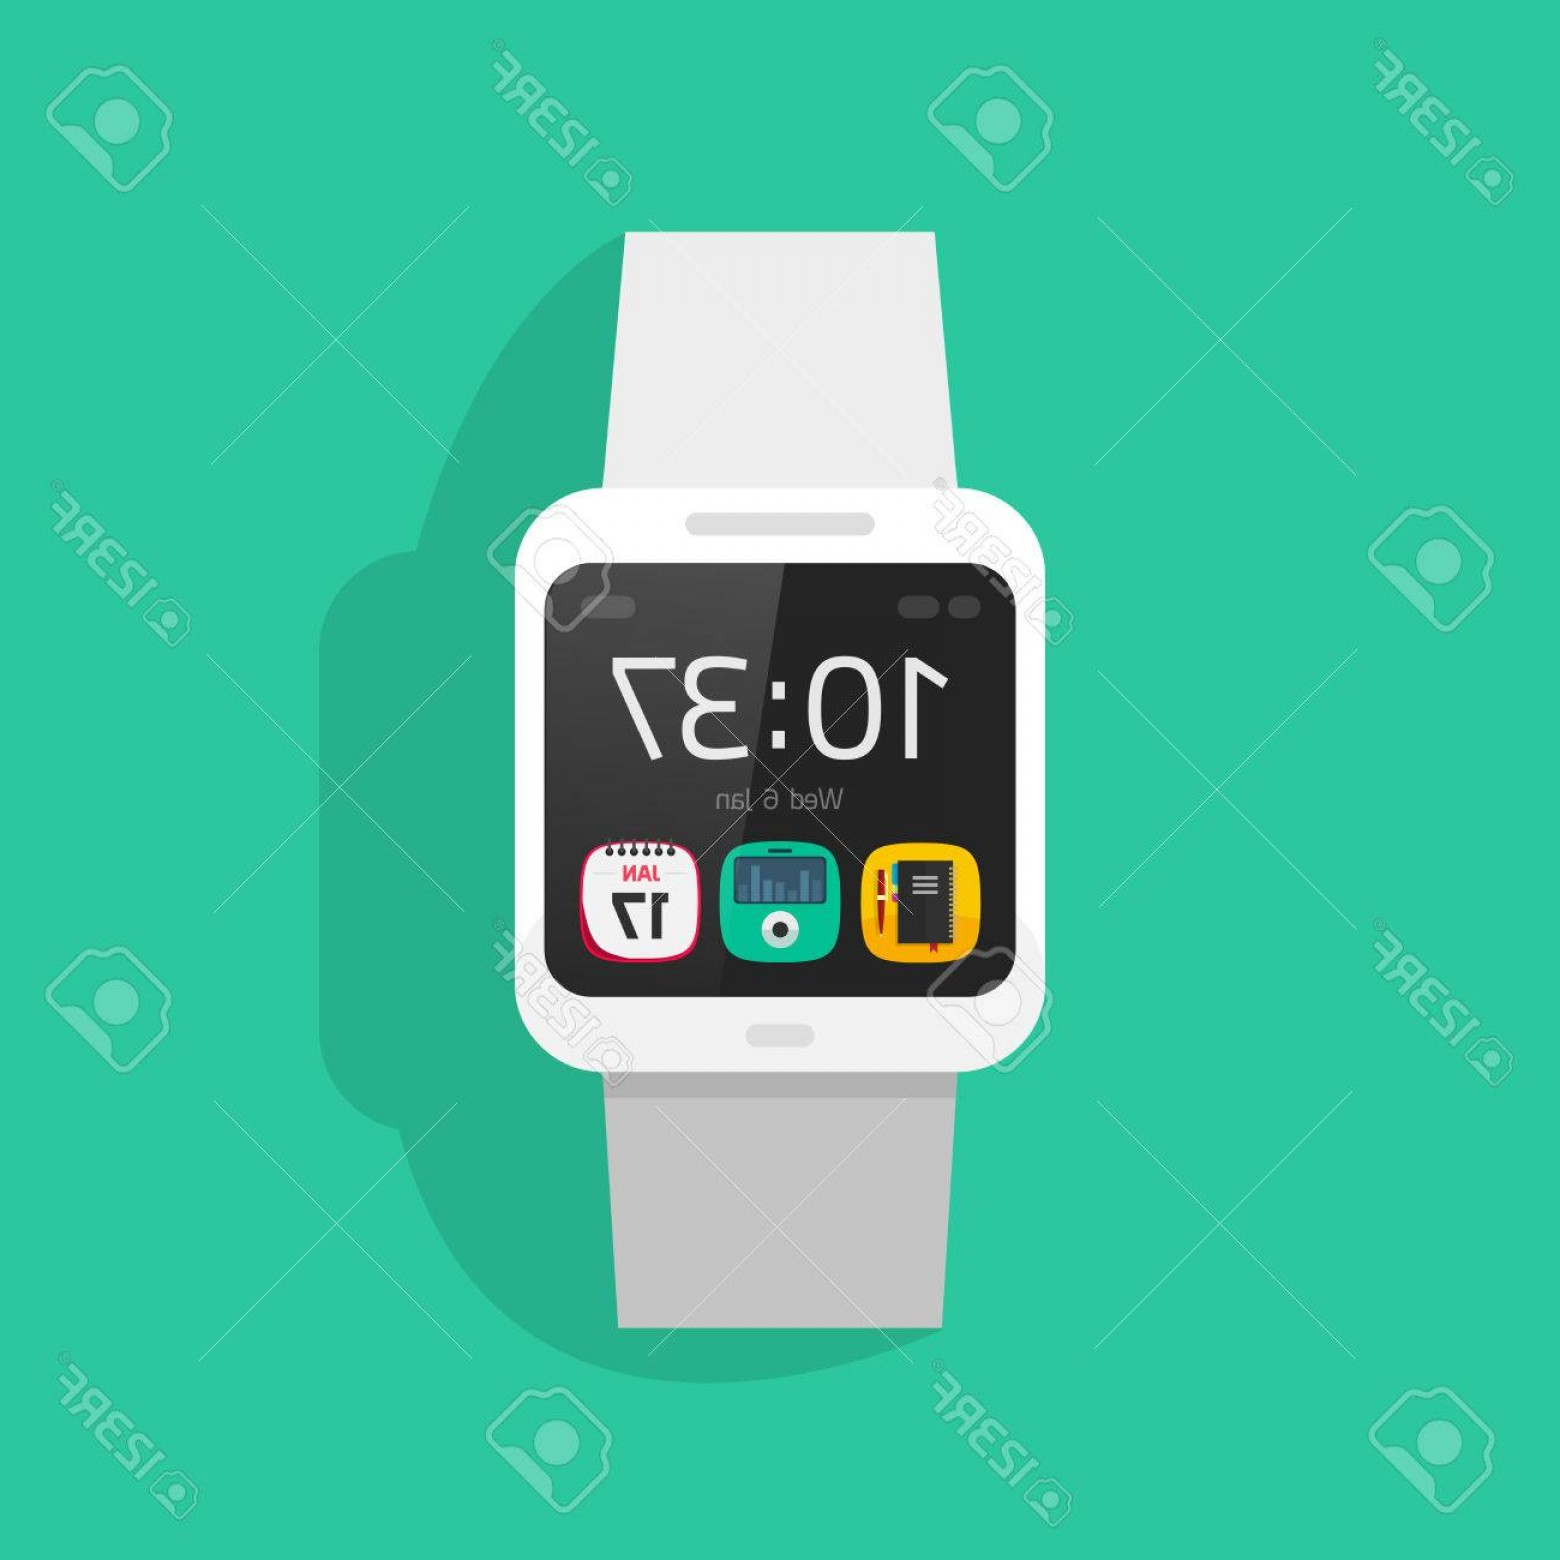 Fancy Wrist Watch Vector: Photostock Vector White Smart Watch Vector Illustration Isolated On Colorful Background Digital Hand Clock With Touchs